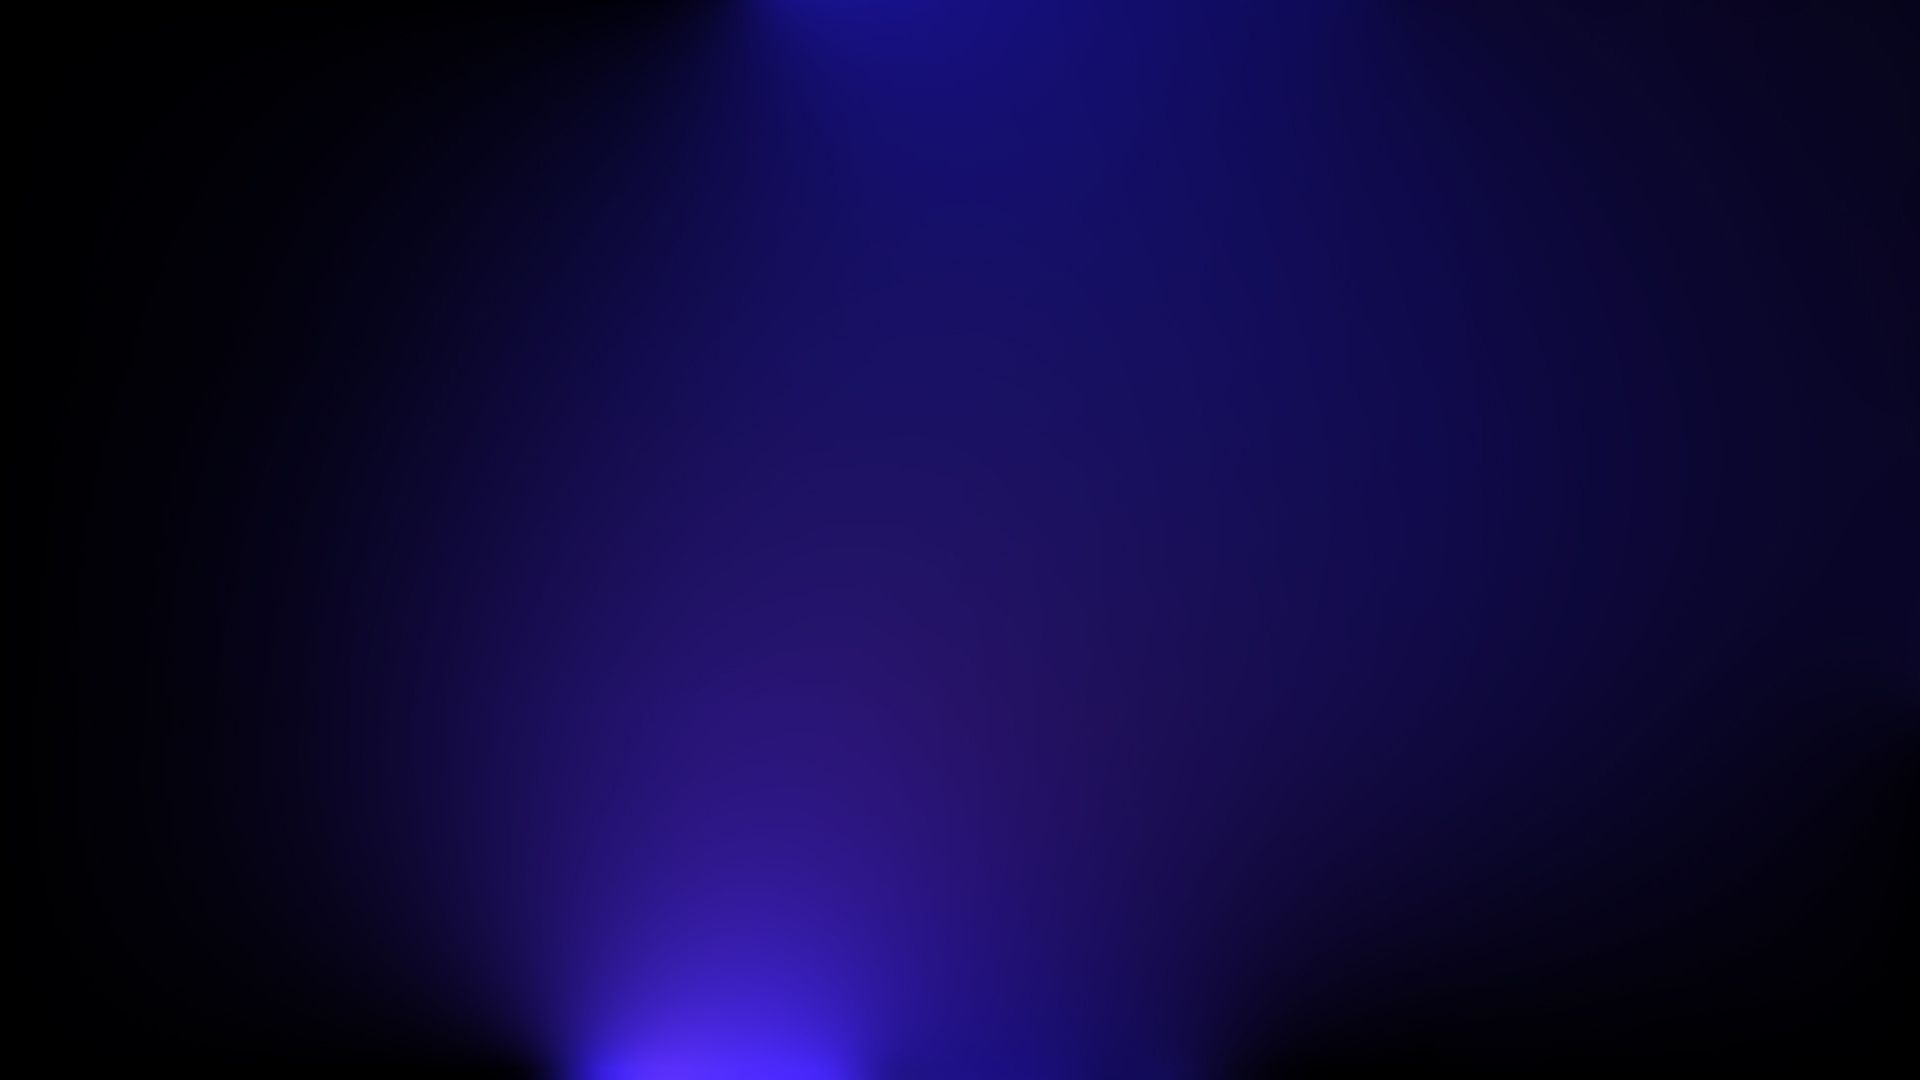 Dark Blue Backgrounds Wallpapers - Wallpaper Cave